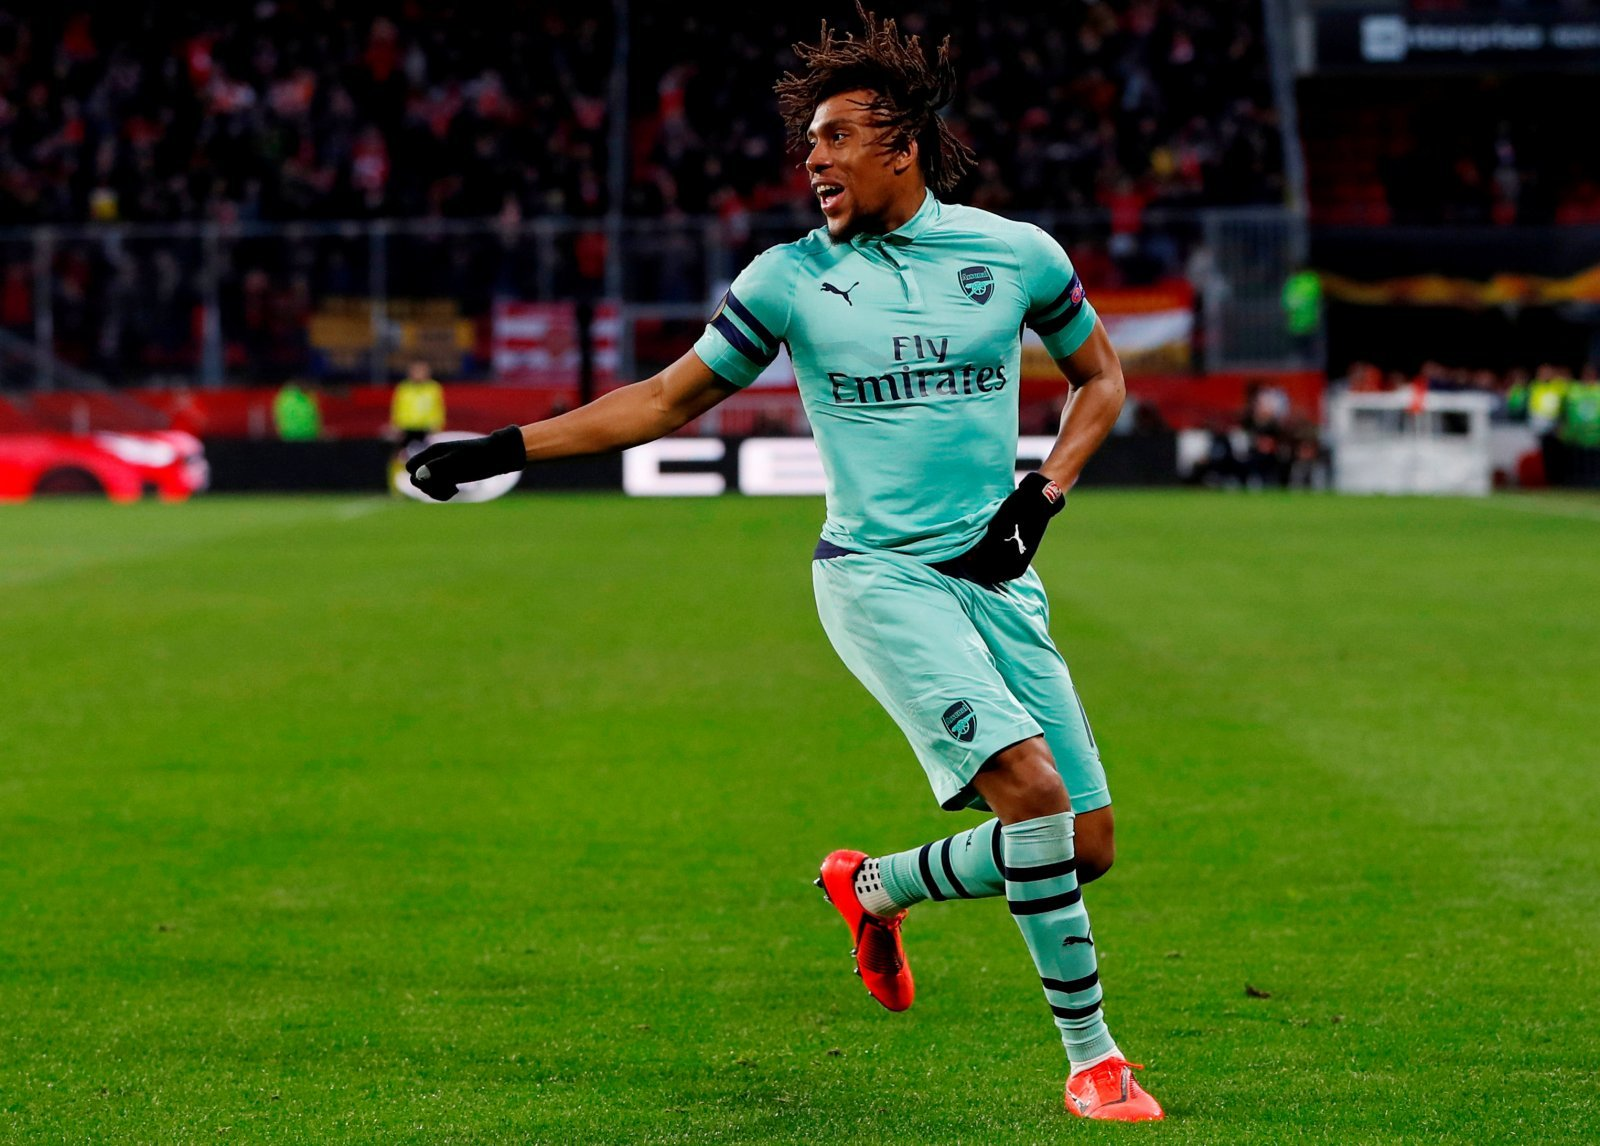 Arsenal vs Rennes: Alex Iwobi saved faced amongst sea of mediocrity